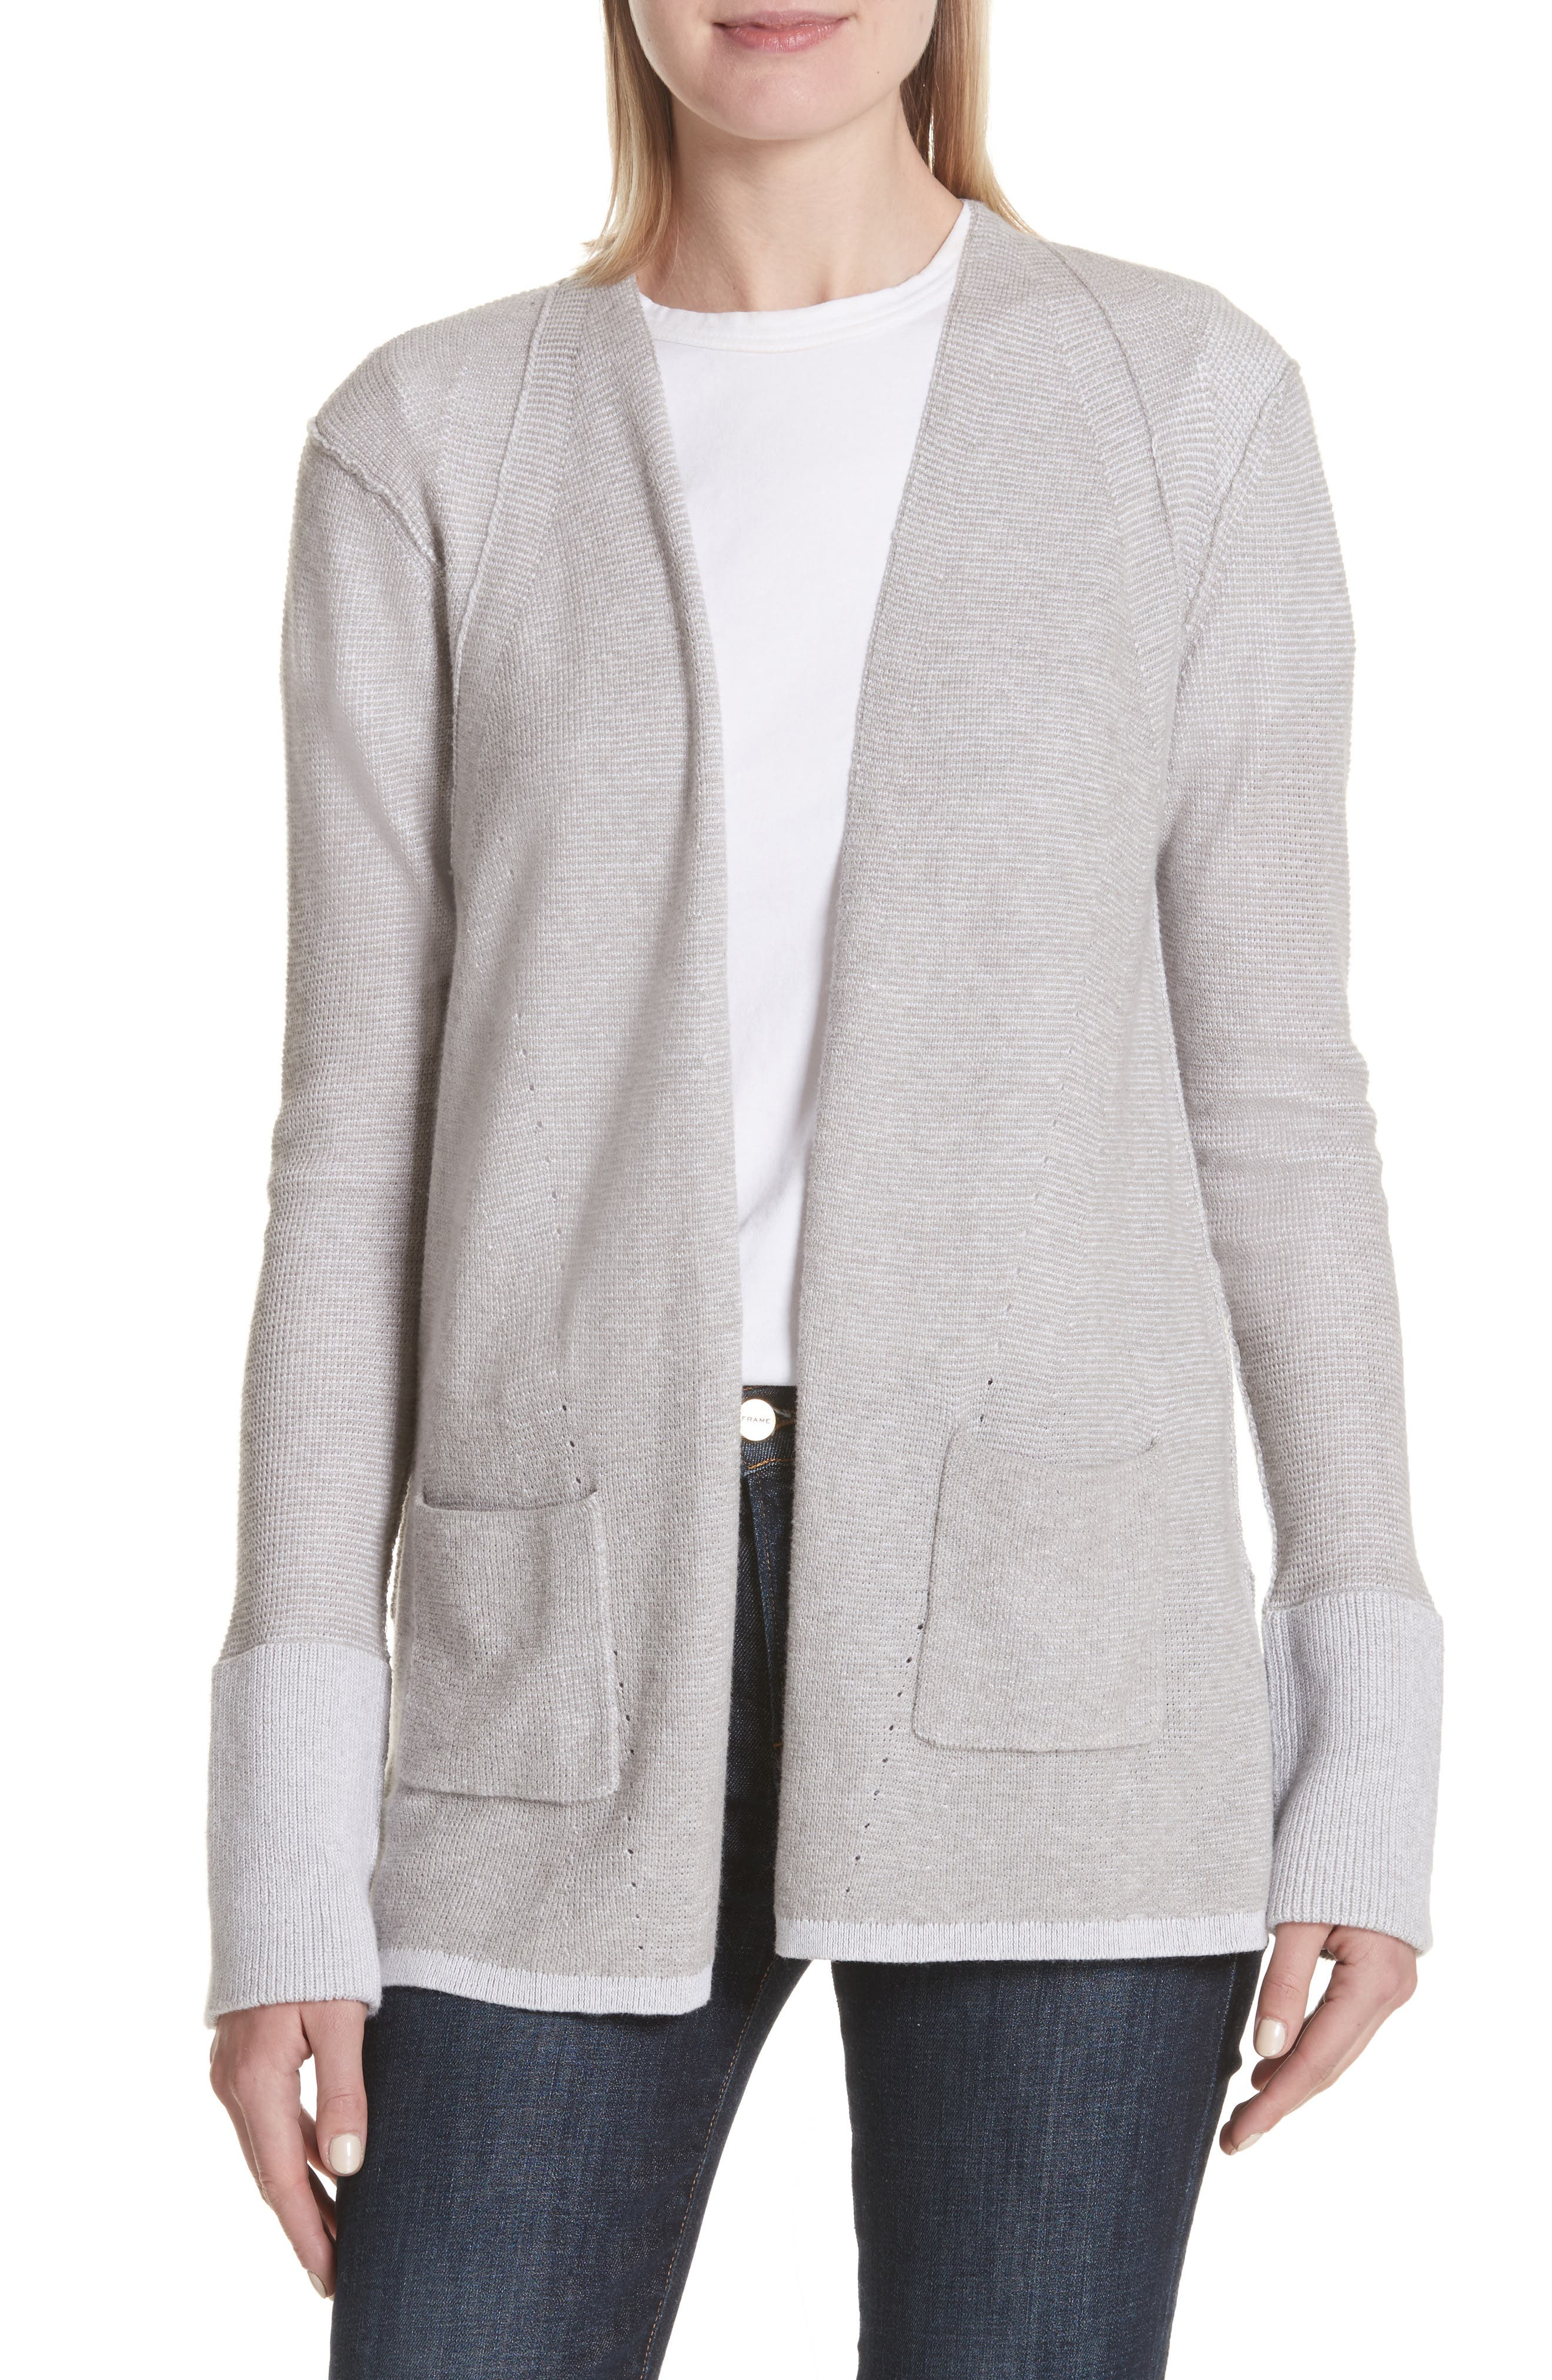 Cotton & Cashmere Waffle Knit Cardigan,                         Main,                         color, Heather Grey